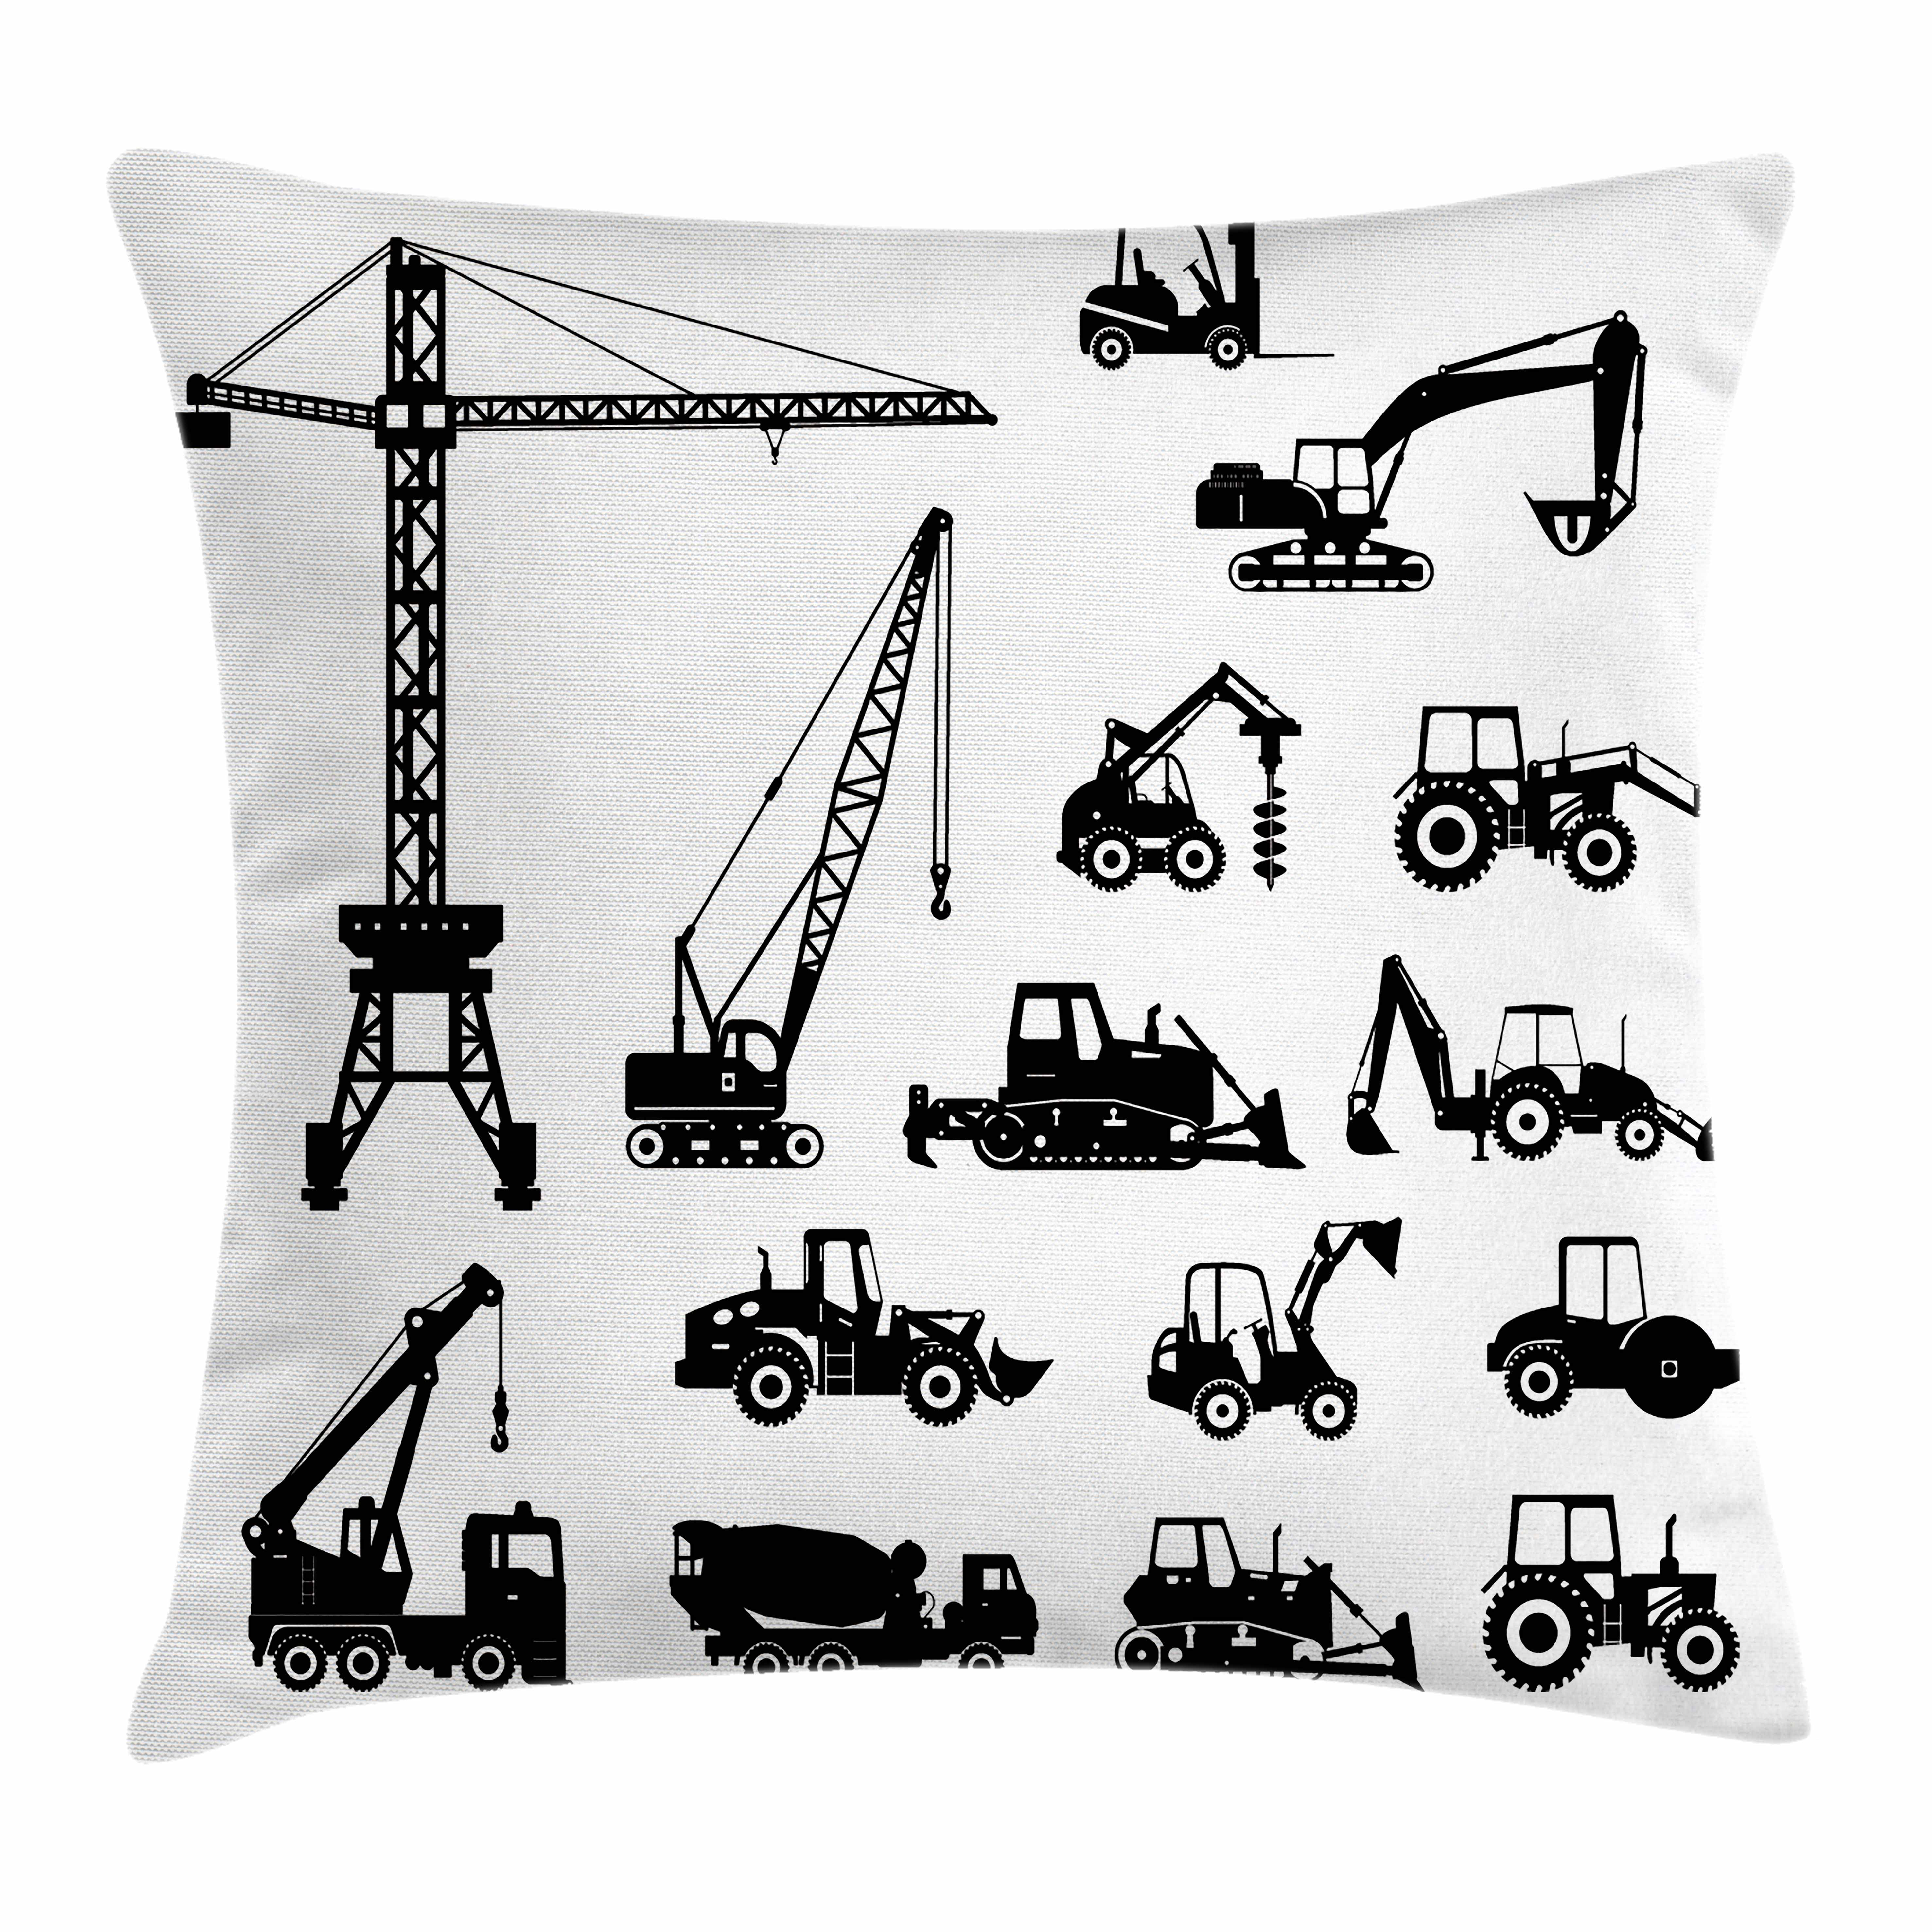 Construction Throw Pillow Cushion Cover, Black Silhouettes Concrete Mixer Machines Industrial Set Trucks Tractors,... by Kozmos